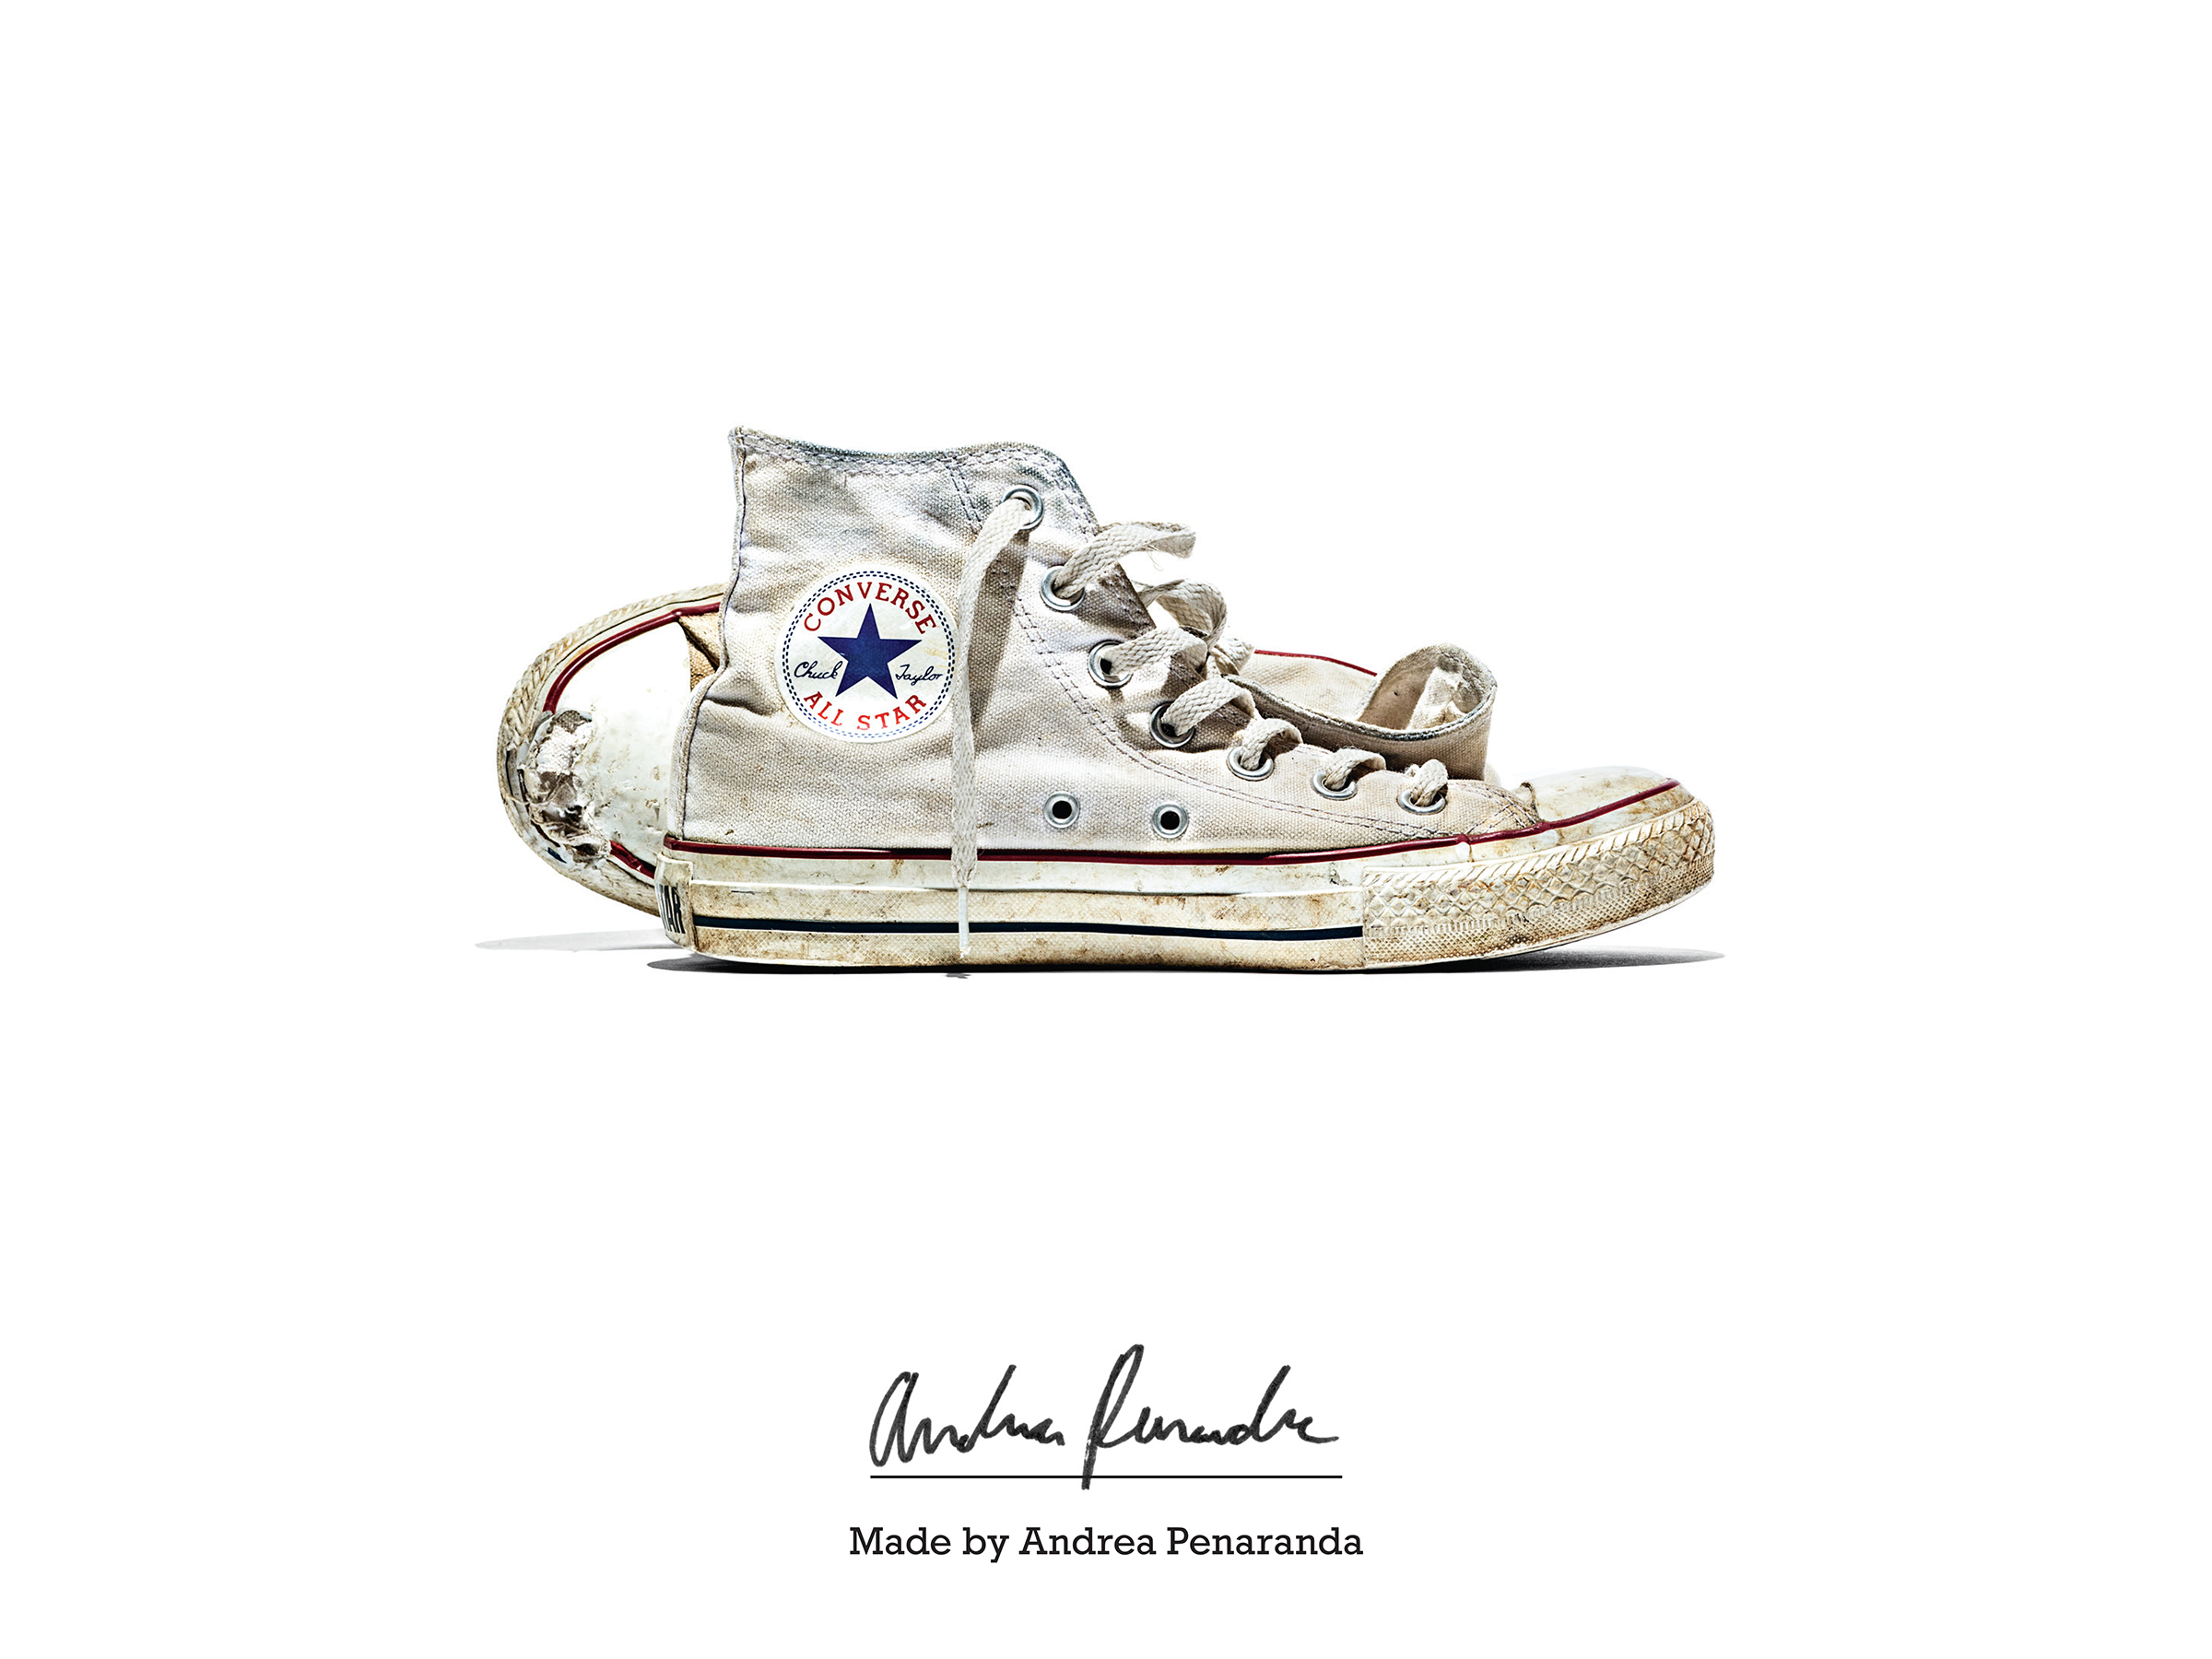 bbdd3cc1c25a Converse Made by You - The Inspiration Room